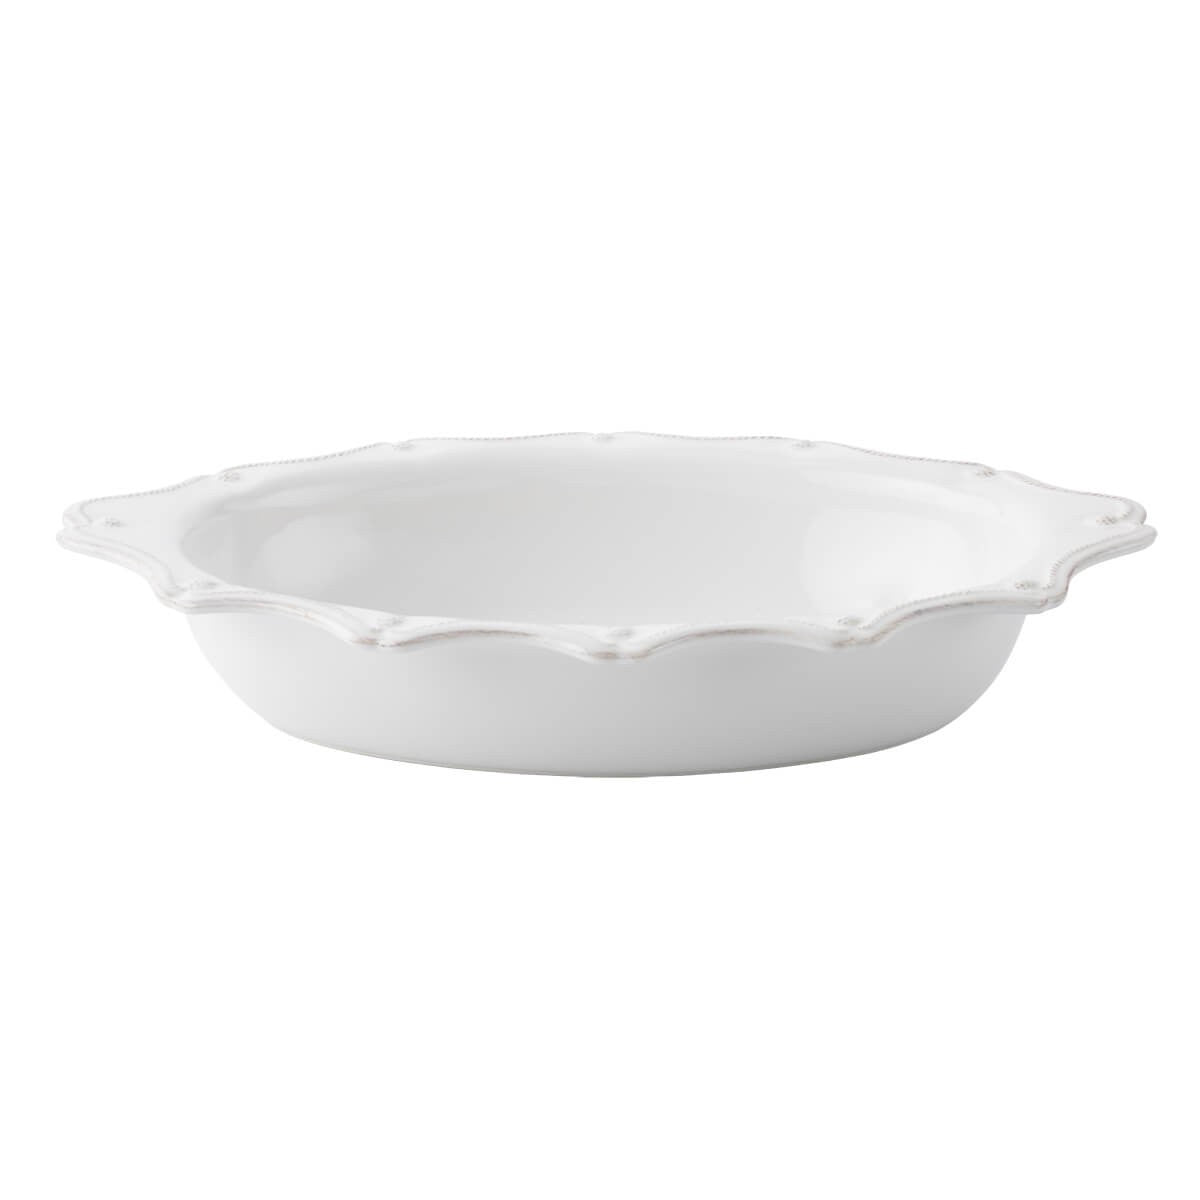 "Juliska - Berry & Thread Whitewash 18"" Oval Baker"